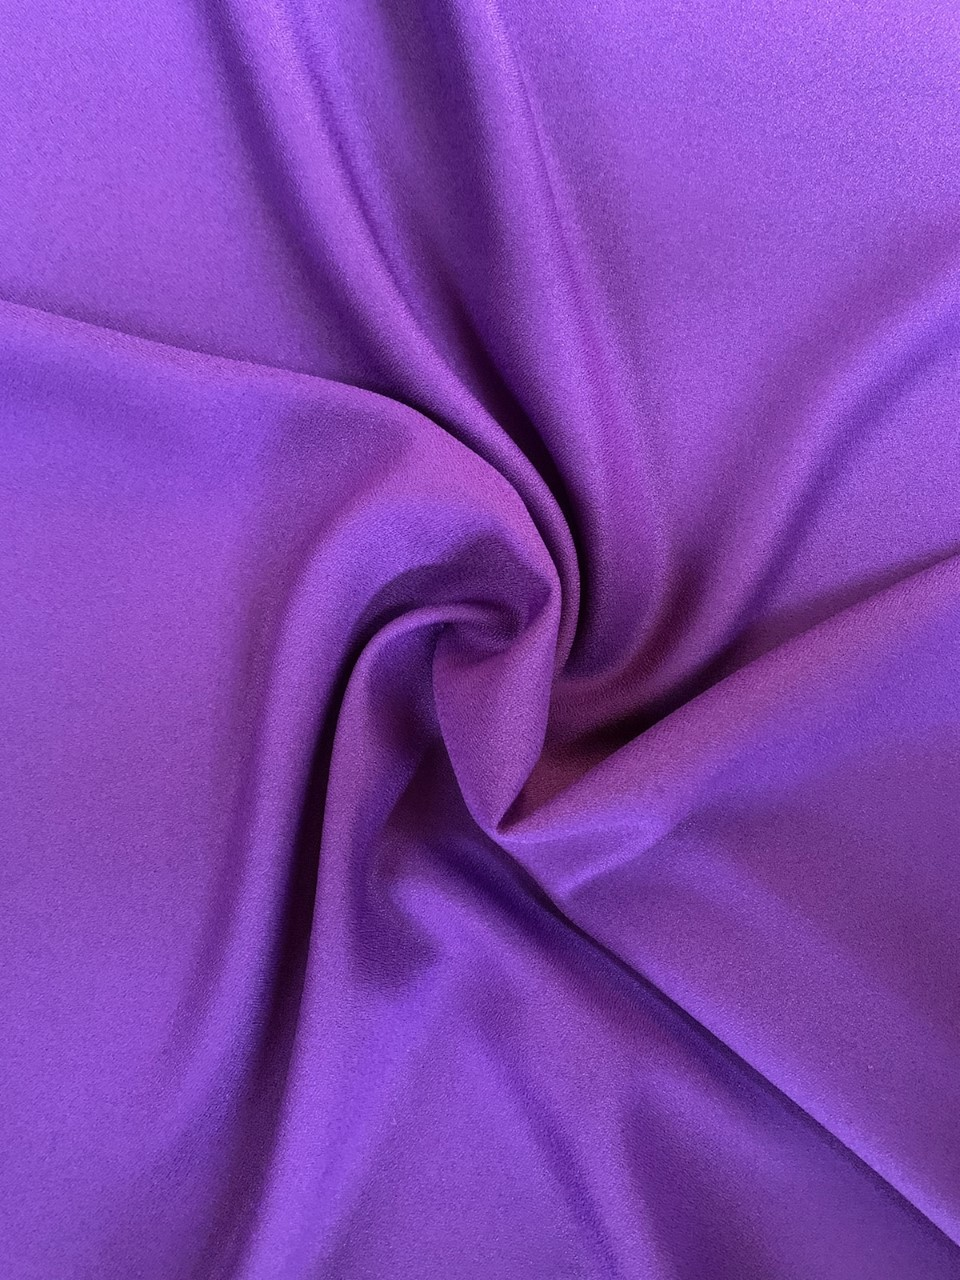 "Purple Crepe Fabric - 60"" by the yard (100% polyester)"